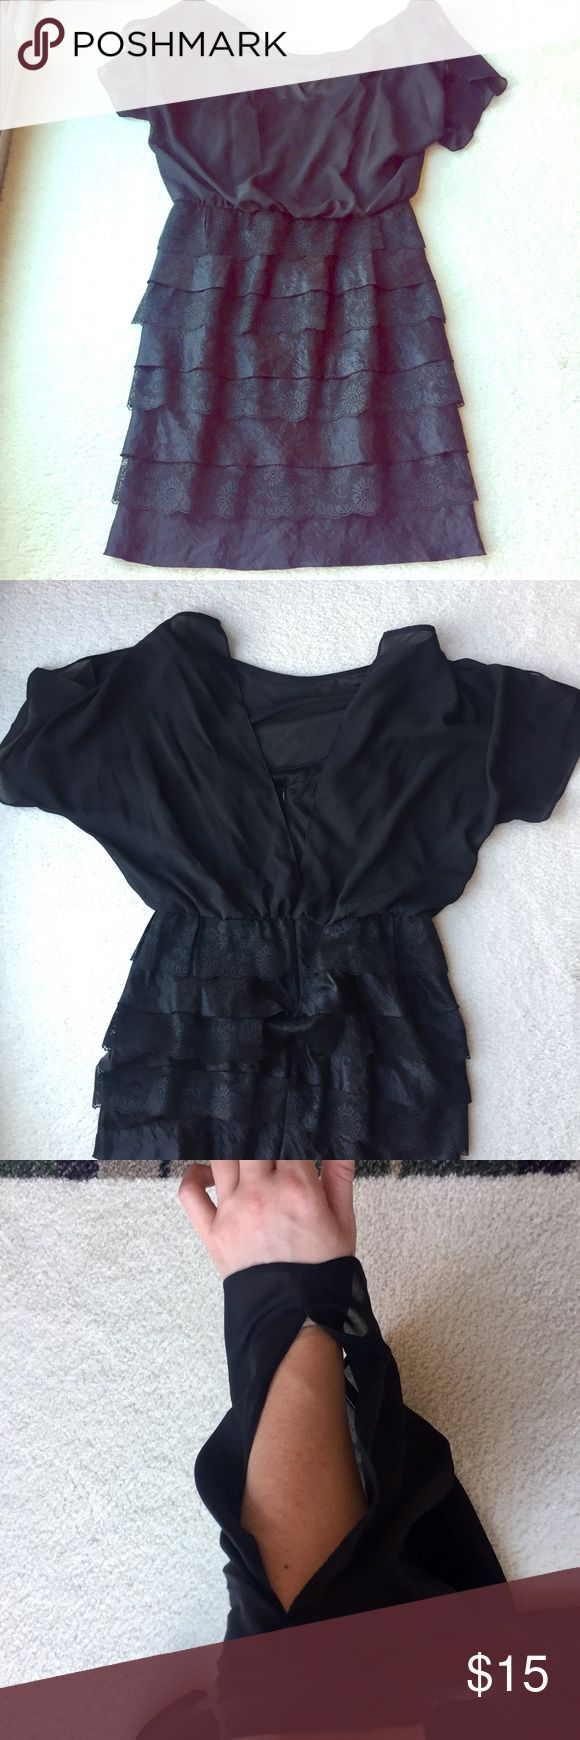 Sexy Little Black Dress Sheer Black Overlay over Top Potion of Dress. Bottom is Tiered to about knee length. The sleeves have a sexy cut out on each shoulder showing the perfect amount of skin. This is a summer must have staple LBD. Size 14 from the Dress Barn but Tags removed Open to all offers. I am selling this for my mom and she just wants to have one sale. Dress Barn Dresses Midi